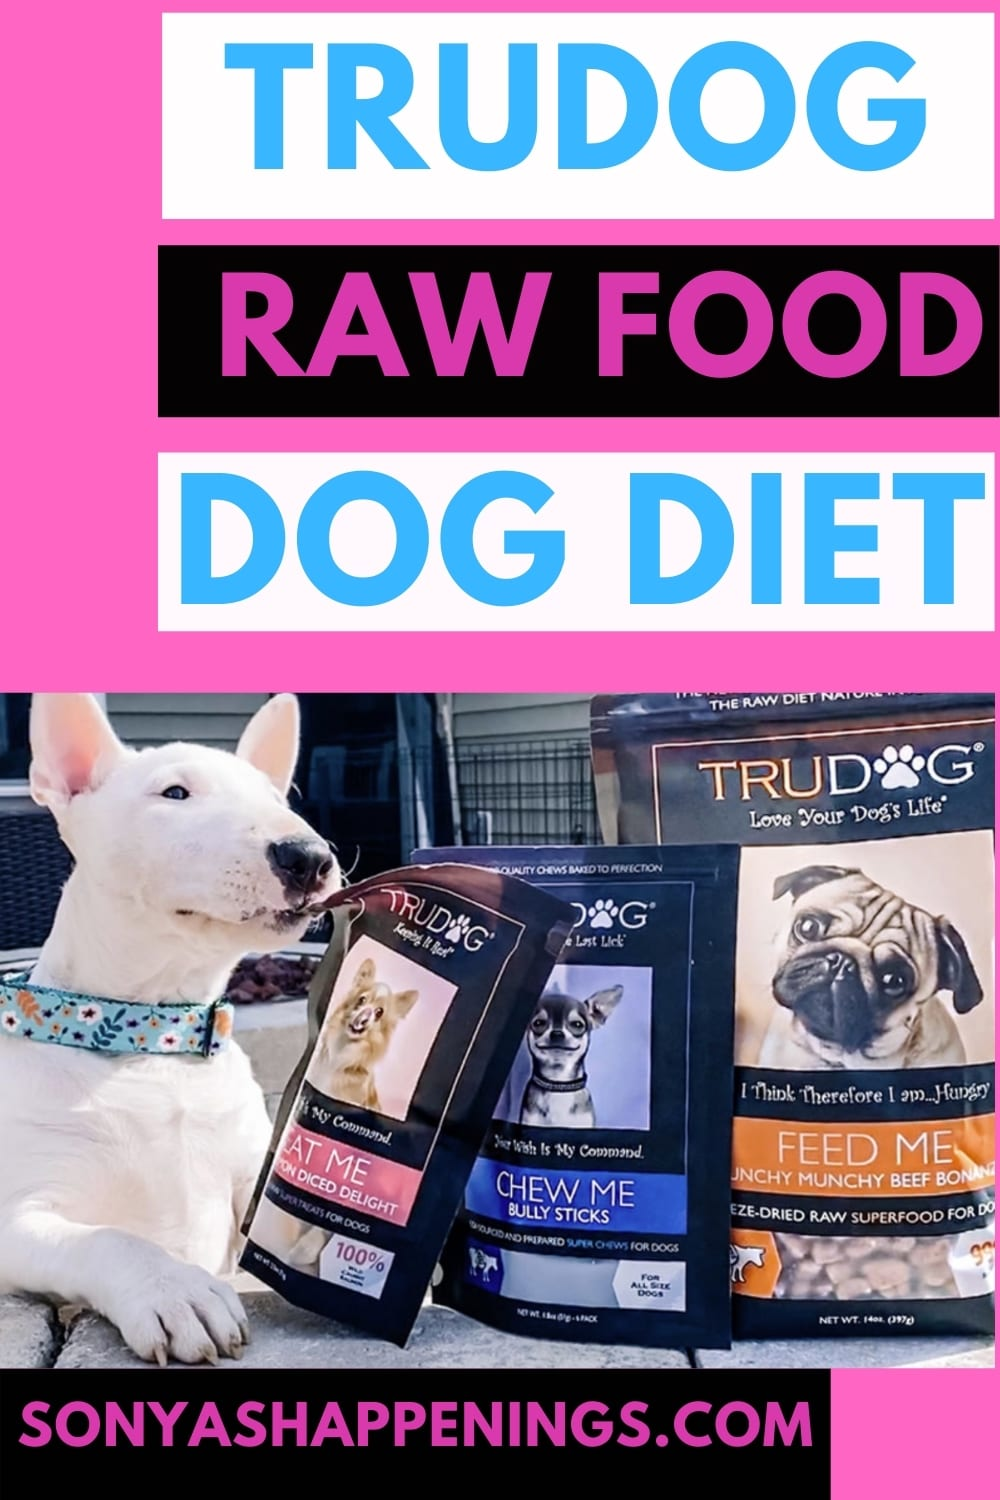 Have You Thought About Feeding Your Dog A Raw Diet? Check Out Trudog! #Rawgust